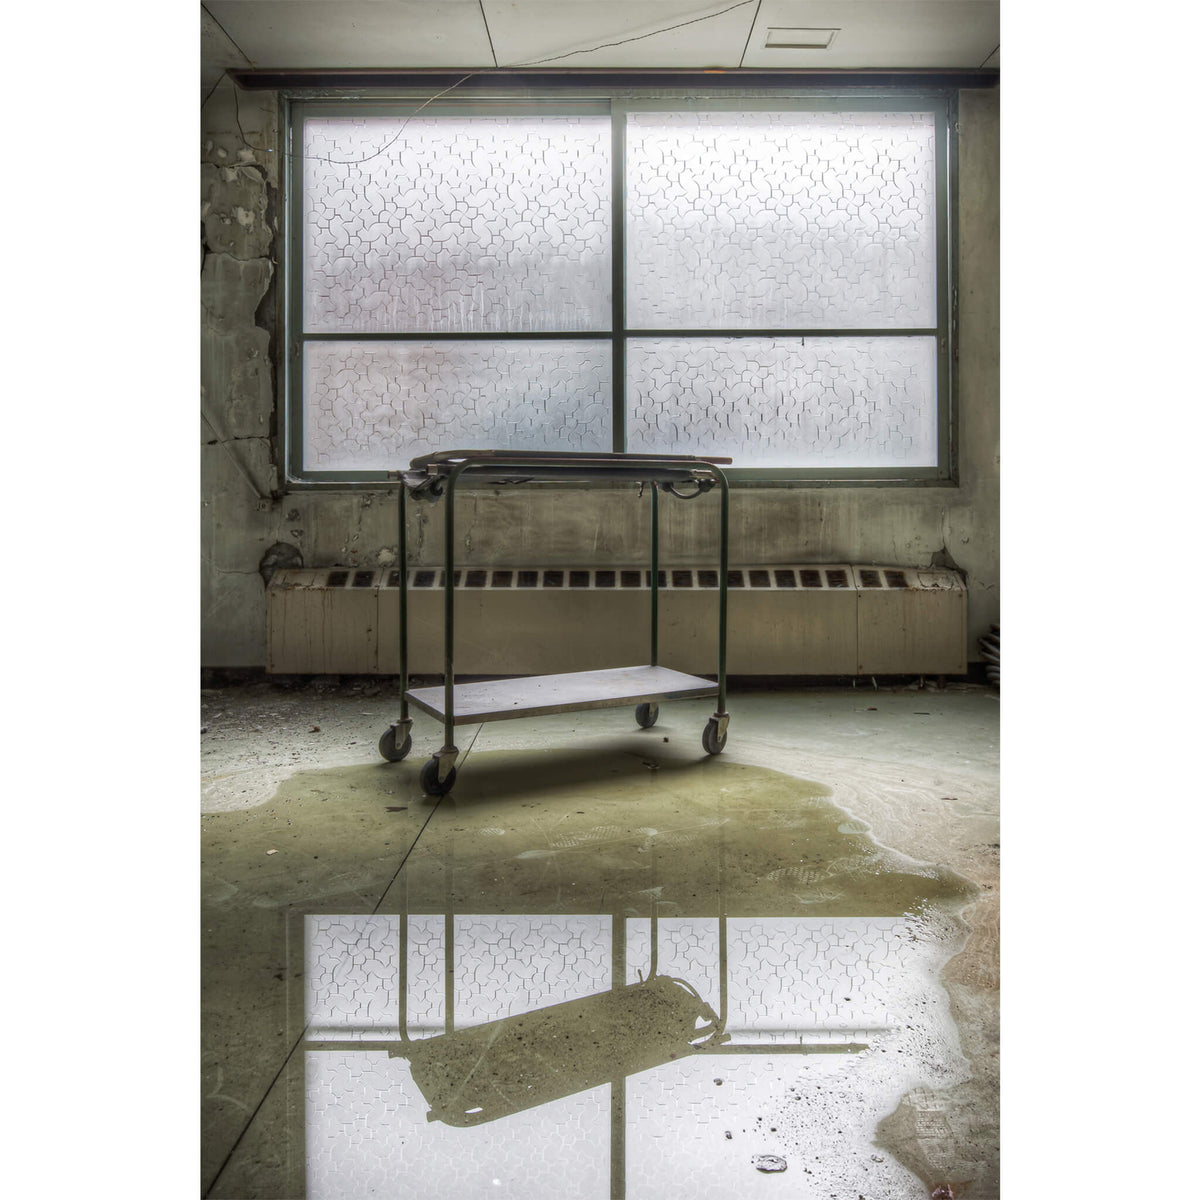 Reflection | Kuwashima Hospital Fine Art Print - Lost Collective Shop